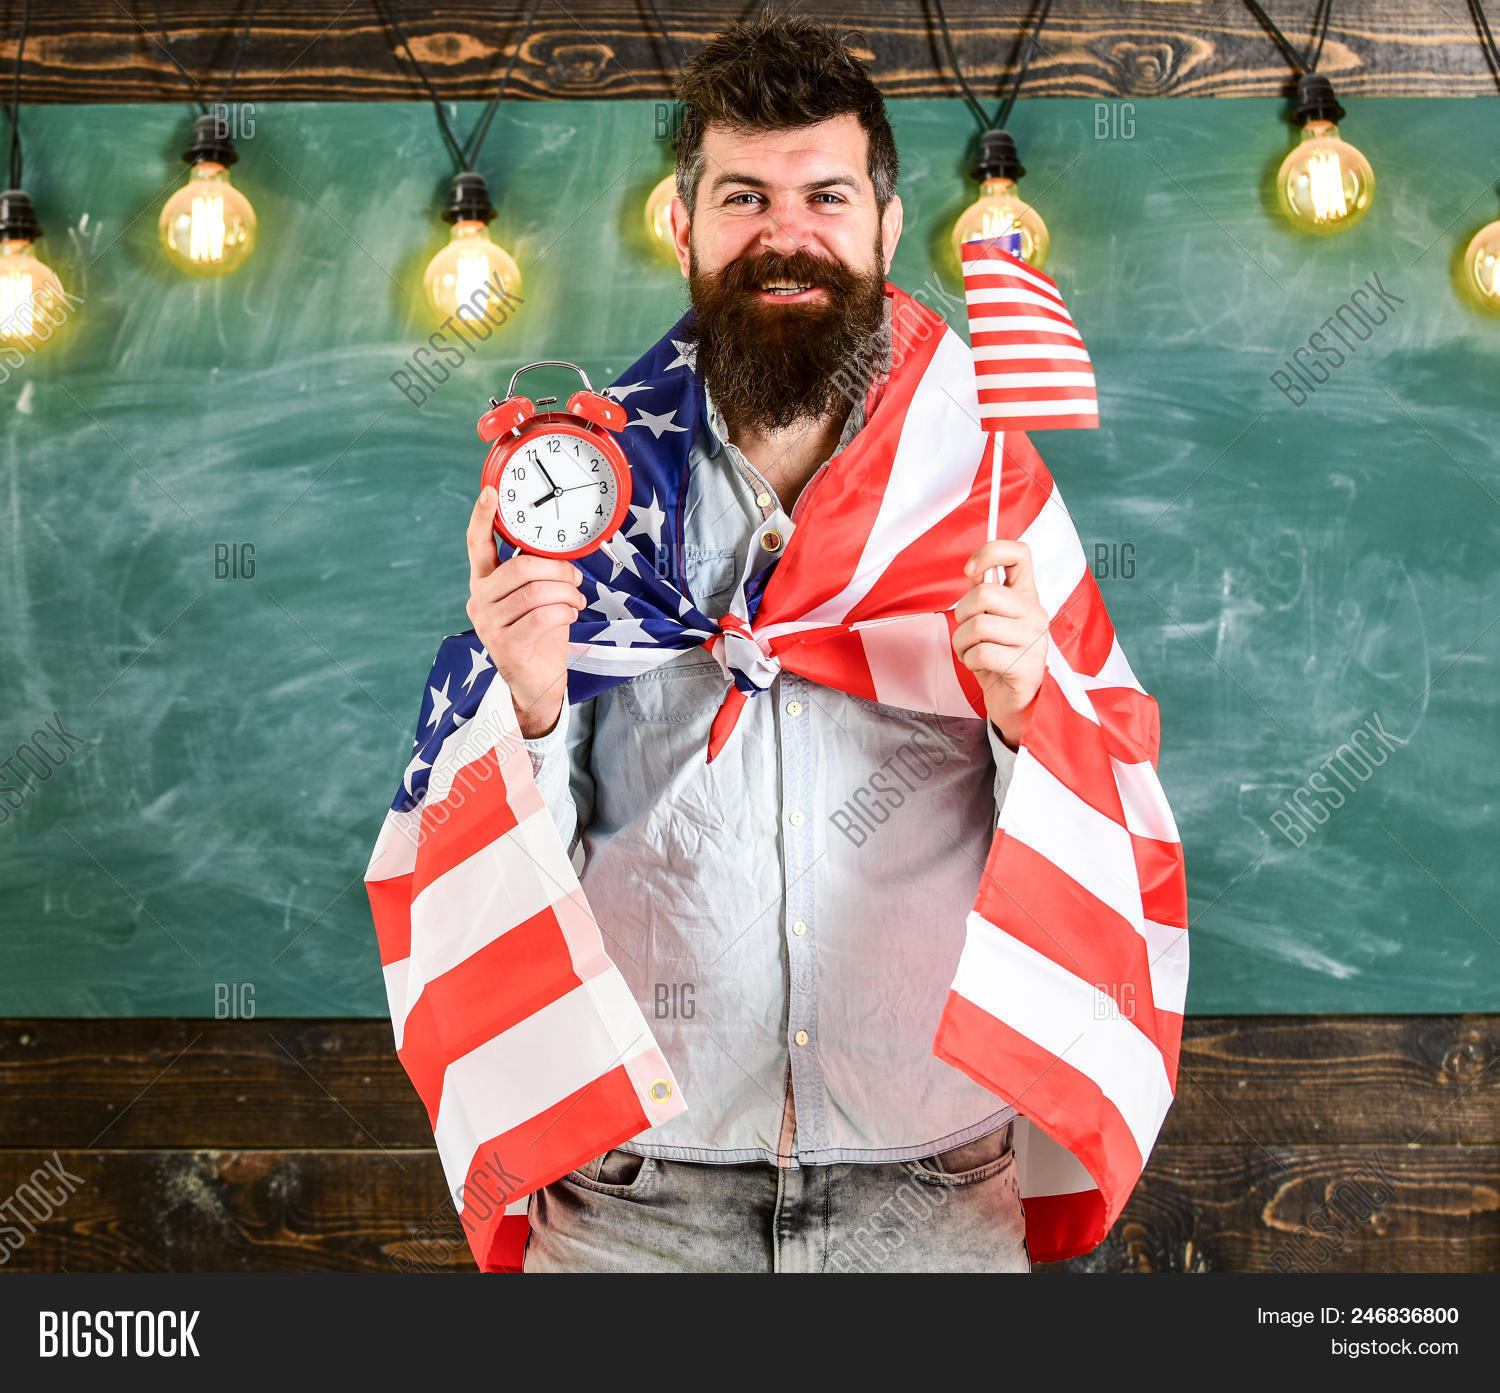 4th,adult,alarm,american,back,background,beard,bearded,casual,caucasian,celebrate,chalkboard,classroom,clock,college,concept,education,educational,face,flag,guy,hand,happy,hipster,hold,holiday,independence,july,knowledge,lecturer,man,mustache,national,patriot,patriotic,person,schedule,school,smile,stand,student,study,system,teach,teacher,time,to,university,unshaven,usa